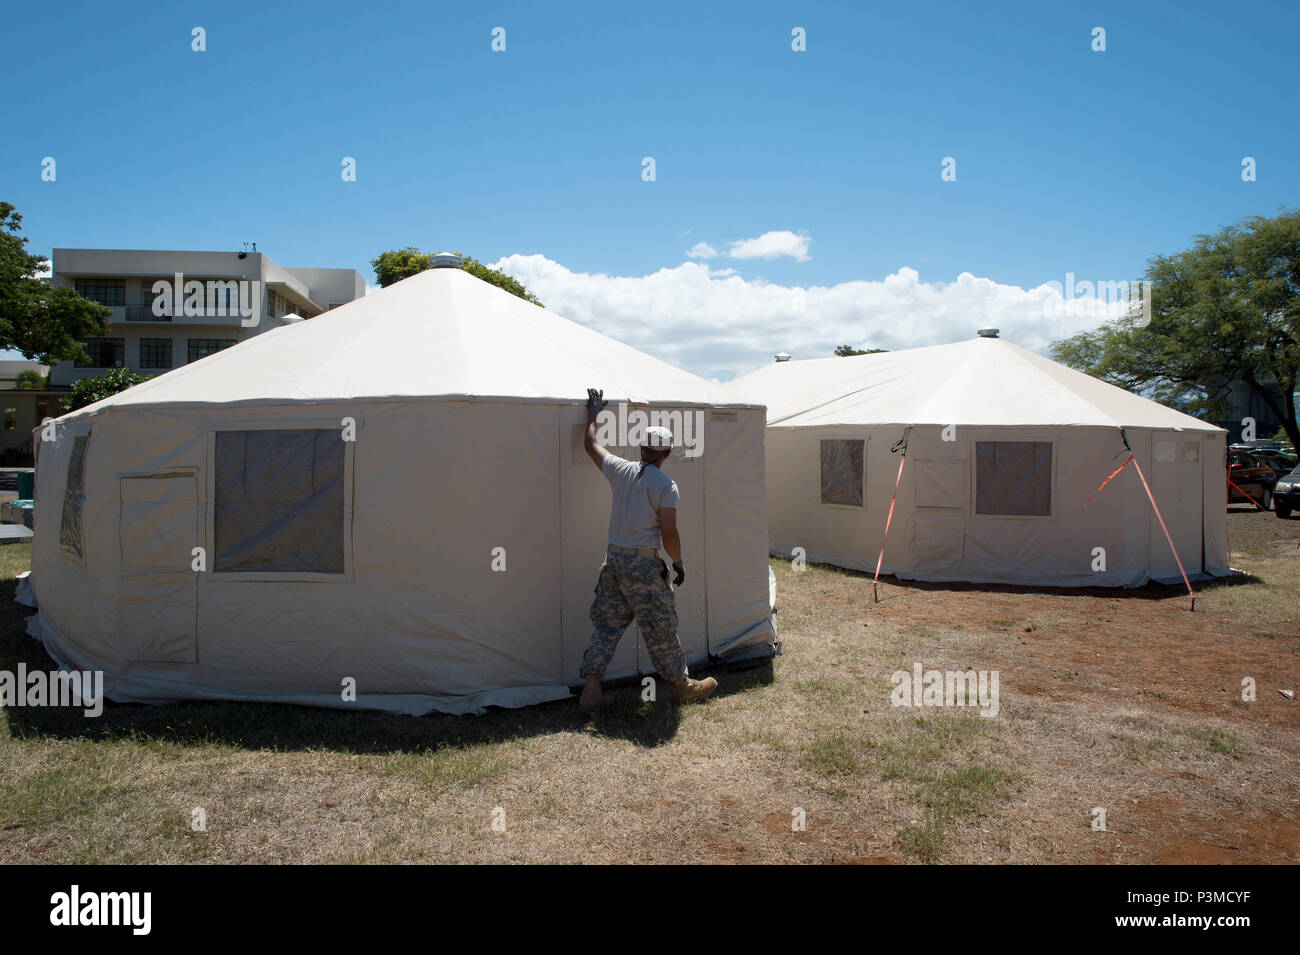 160712-N-SI773-258 FORD ISLAND, HAWAII (July 12, 2016) U.S. Army Soldiers assigned to 445th Civil Affairs Battalion setup a field hospital for Rim of the Pacific 2016. Twenty-six nations, more than 40 ships and submarines, more than 200 aircraft, and 25,000 personnel are participating in RIMPAC from June 30 to Aug. 4, in and around the Hawaiian Islands and Southern California. The world's largest international maritime exercise, RIMPAC provides a unique training opportunity that helps participants foster and sustain the cooperative relationships that are critical to ensuring the safety of sea  Stock Photo